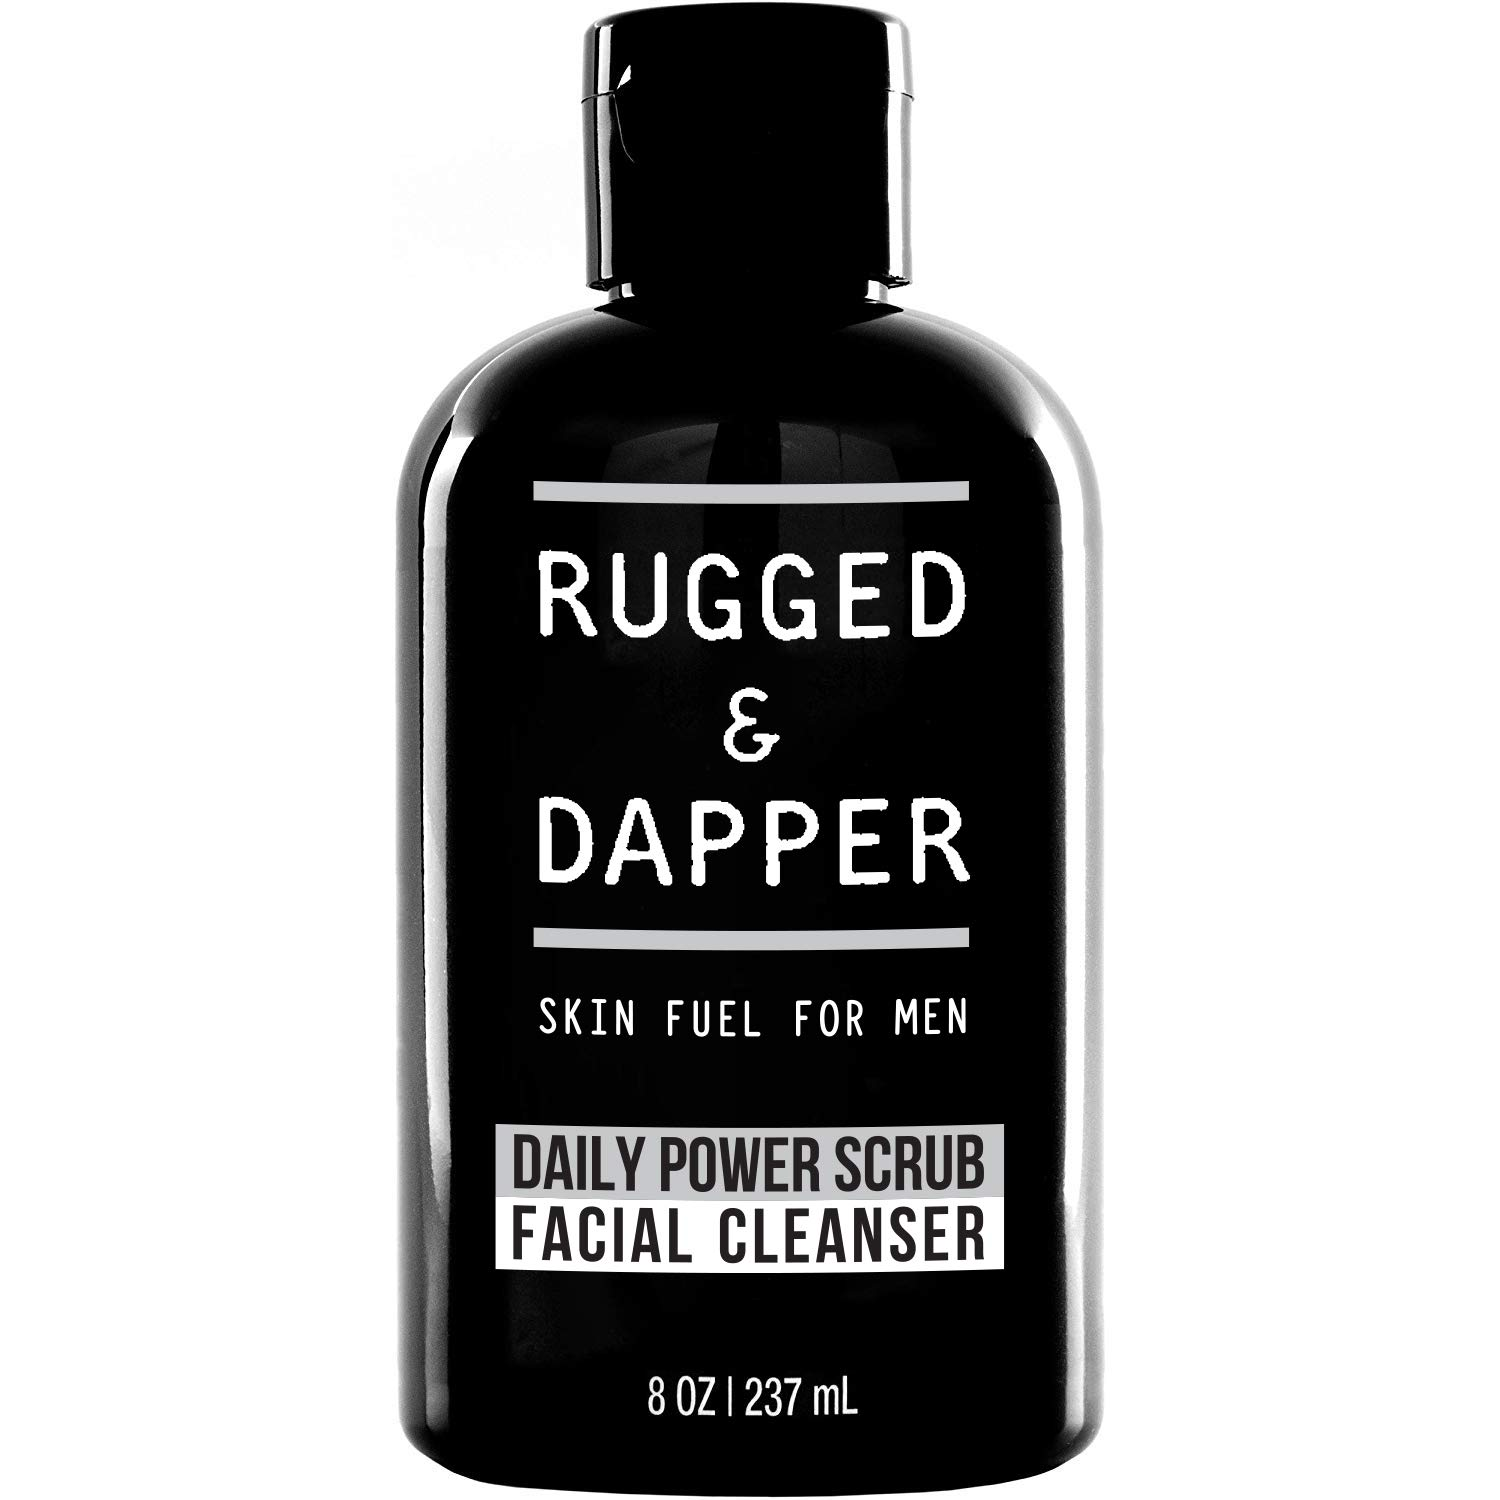 rugged and dapper daily face wash and scrub cleanser for men, best skin care products for men